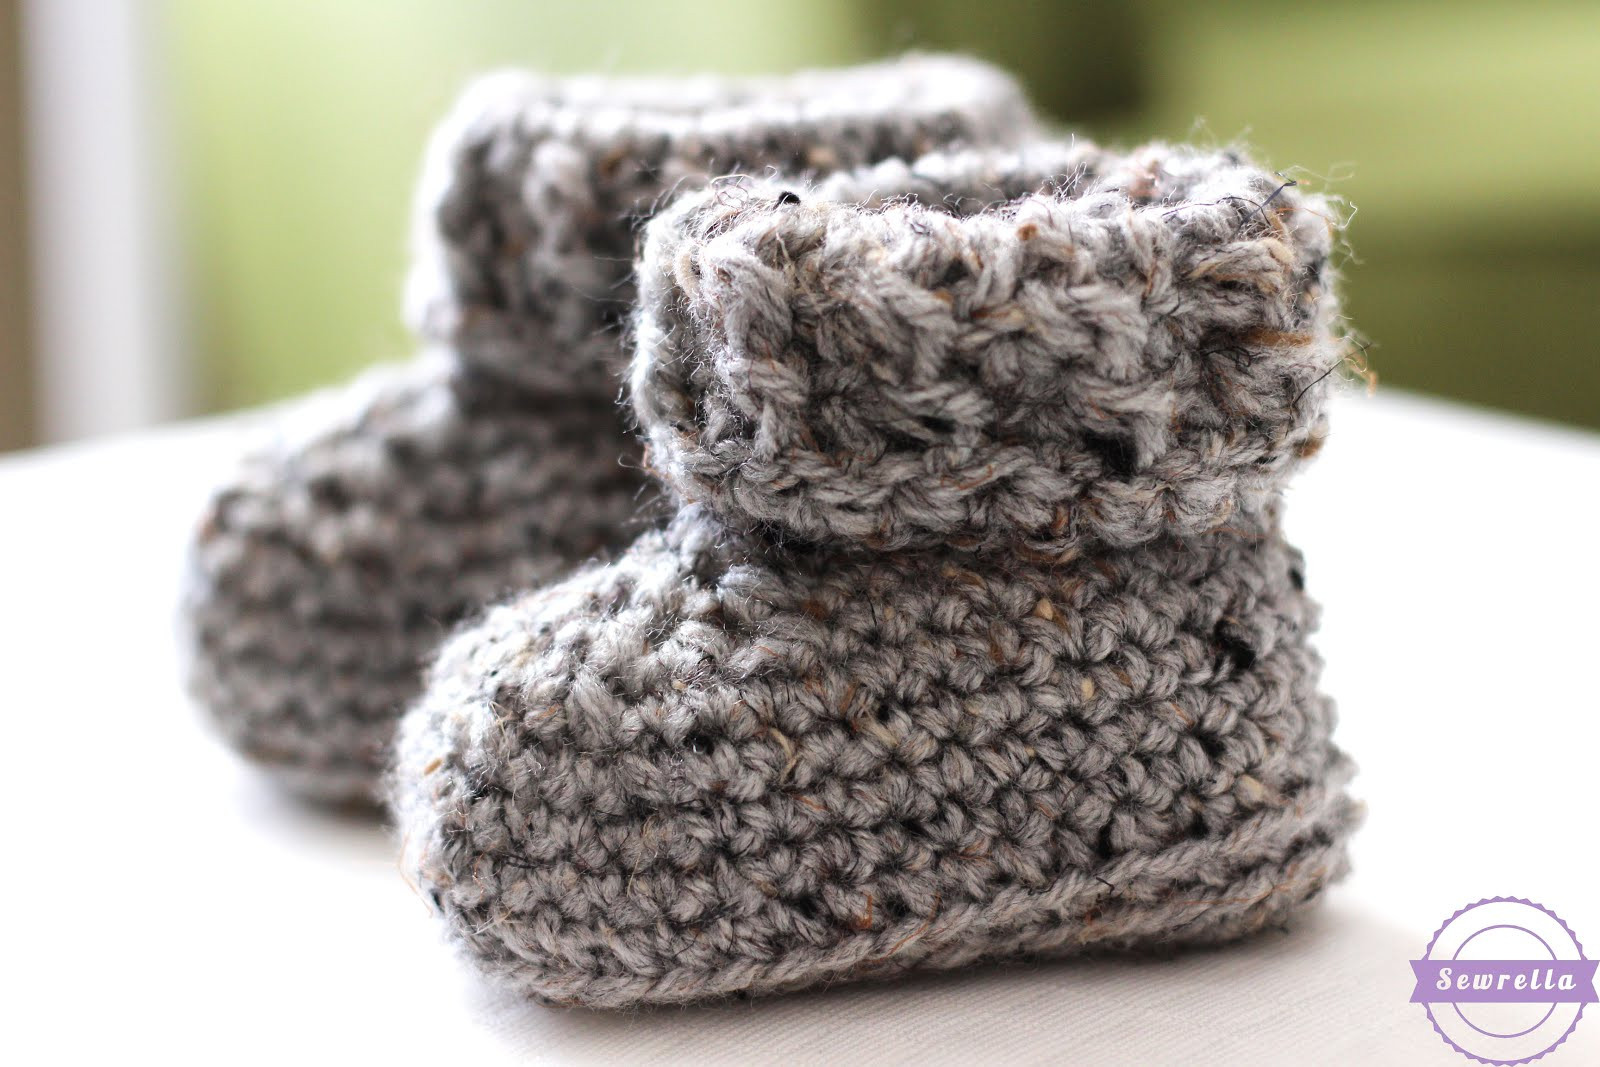 Best Of the Parker Crochet Baby Booties Sewrella Crochet Baby socks Of Beautiful Crochet Baby Booties Patterns for Sweet Little Feet Crochet Baby socks